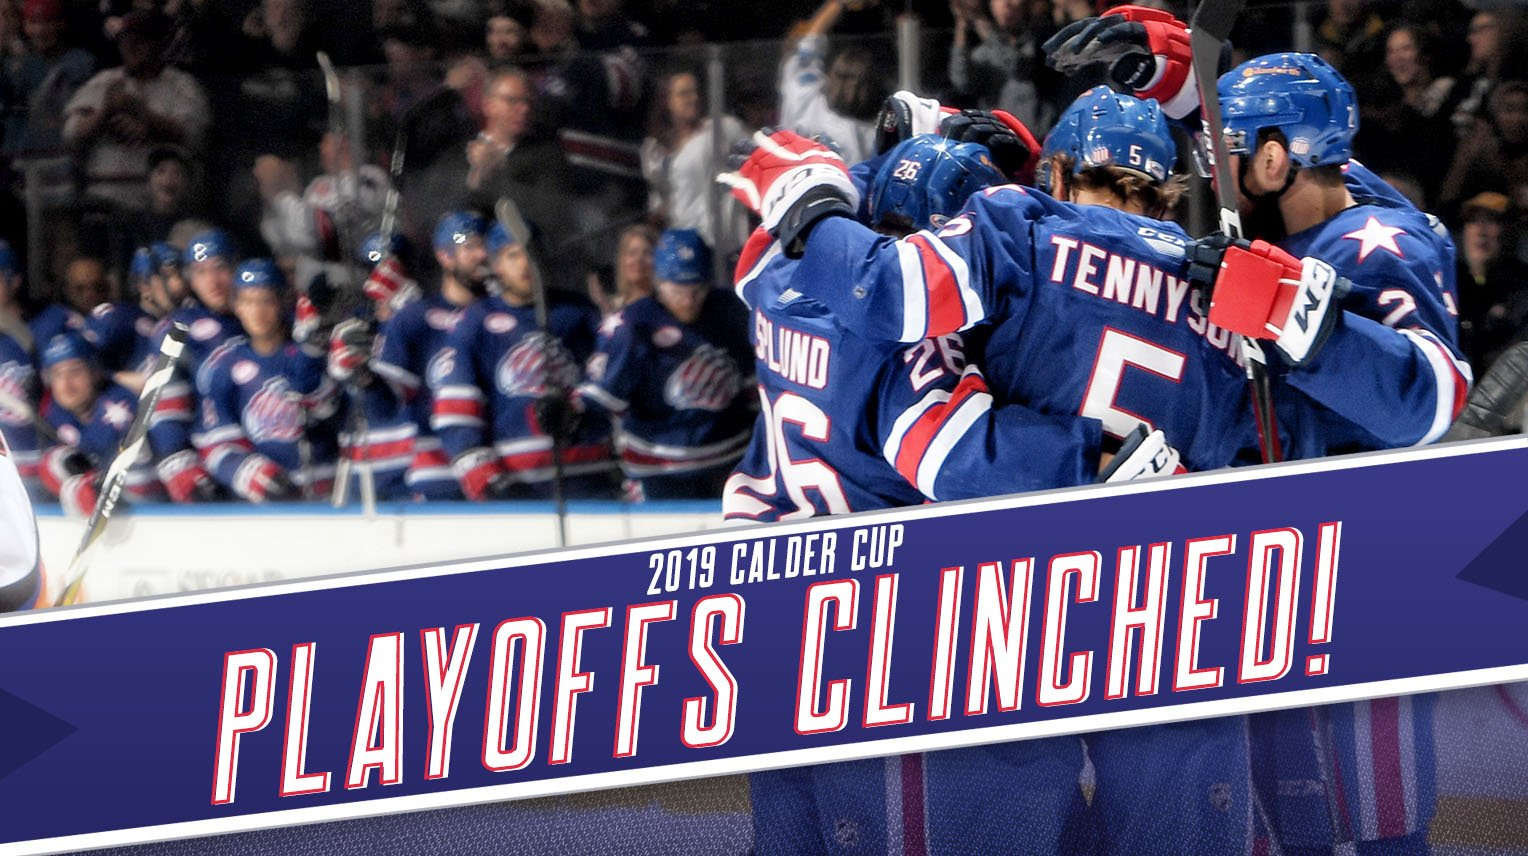 Amerks Clinch a Spot in the 2019 Calder Cup Playoffs